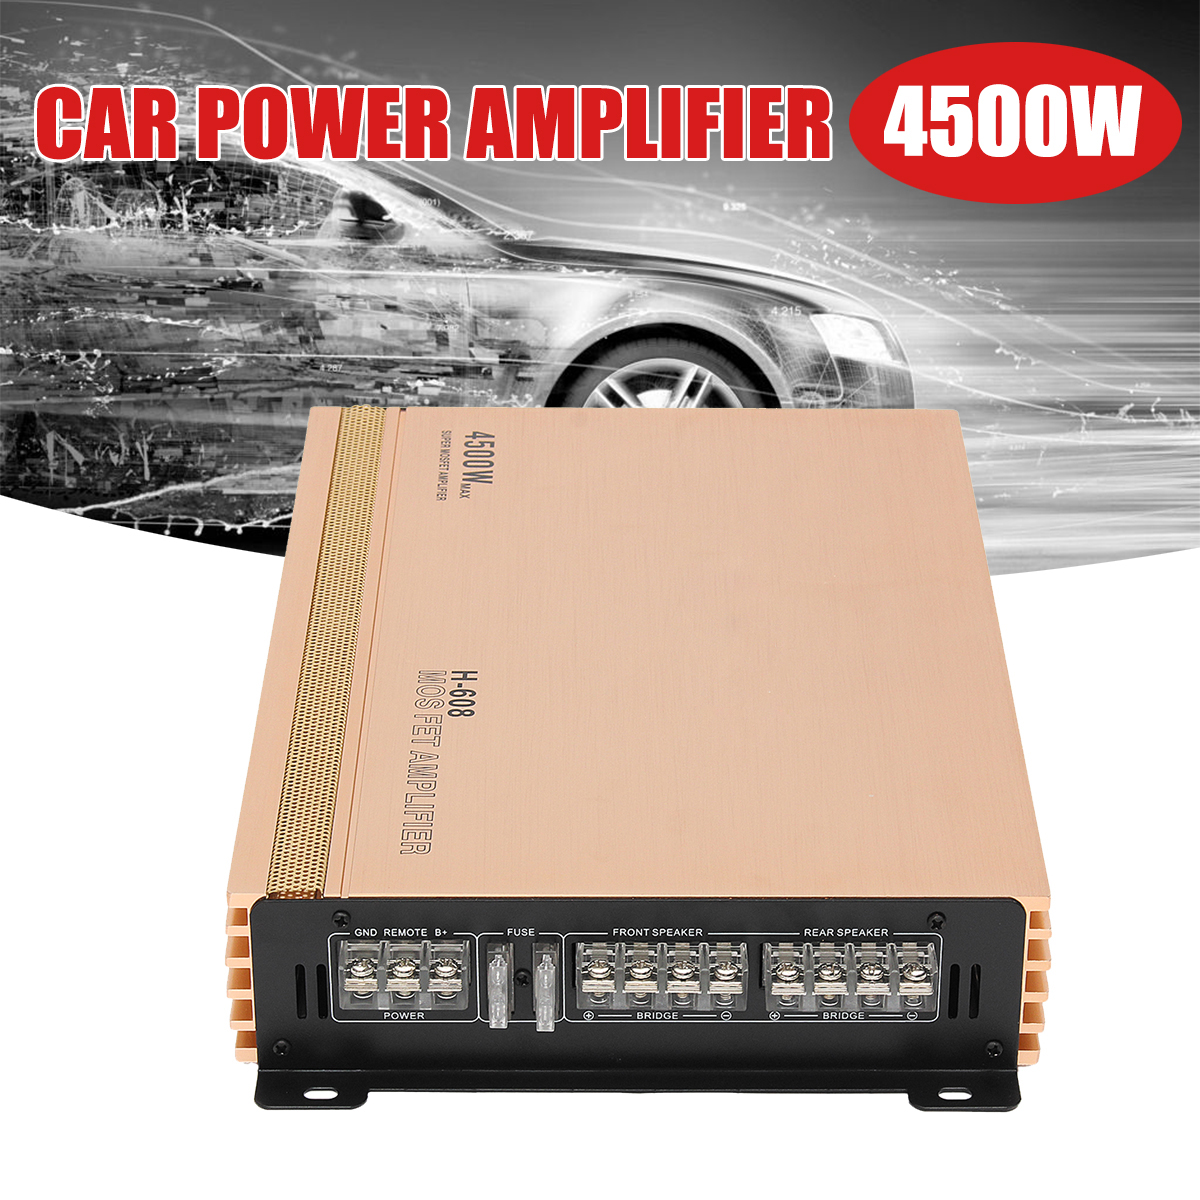 4500W 4 Channel Car Audio Amplifier 12V Auto Car Truck Motorcycle Audio Power Stereo Hi-Fi Amplifiers Amp Speaker Subwoofers auto audio